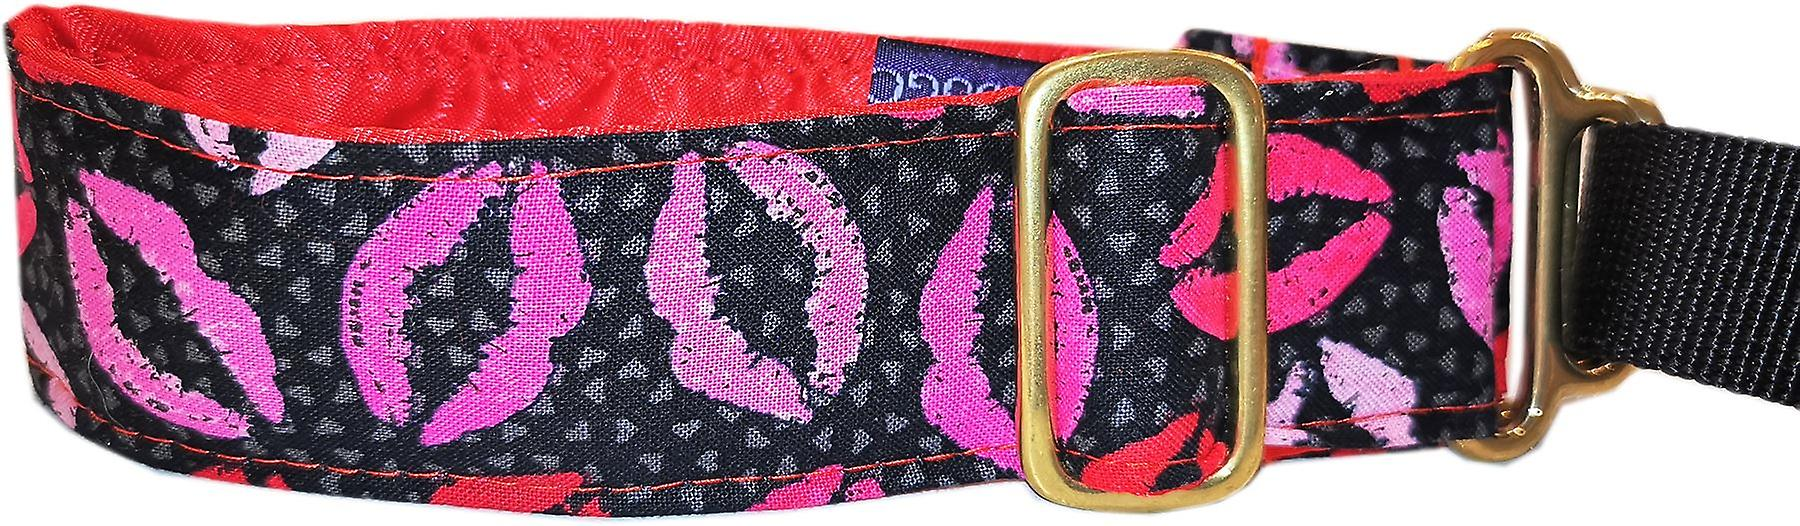 Dogcrafts Martingale 40-25mm Drop Lips Kiss Fabric with Satin Lining Brass